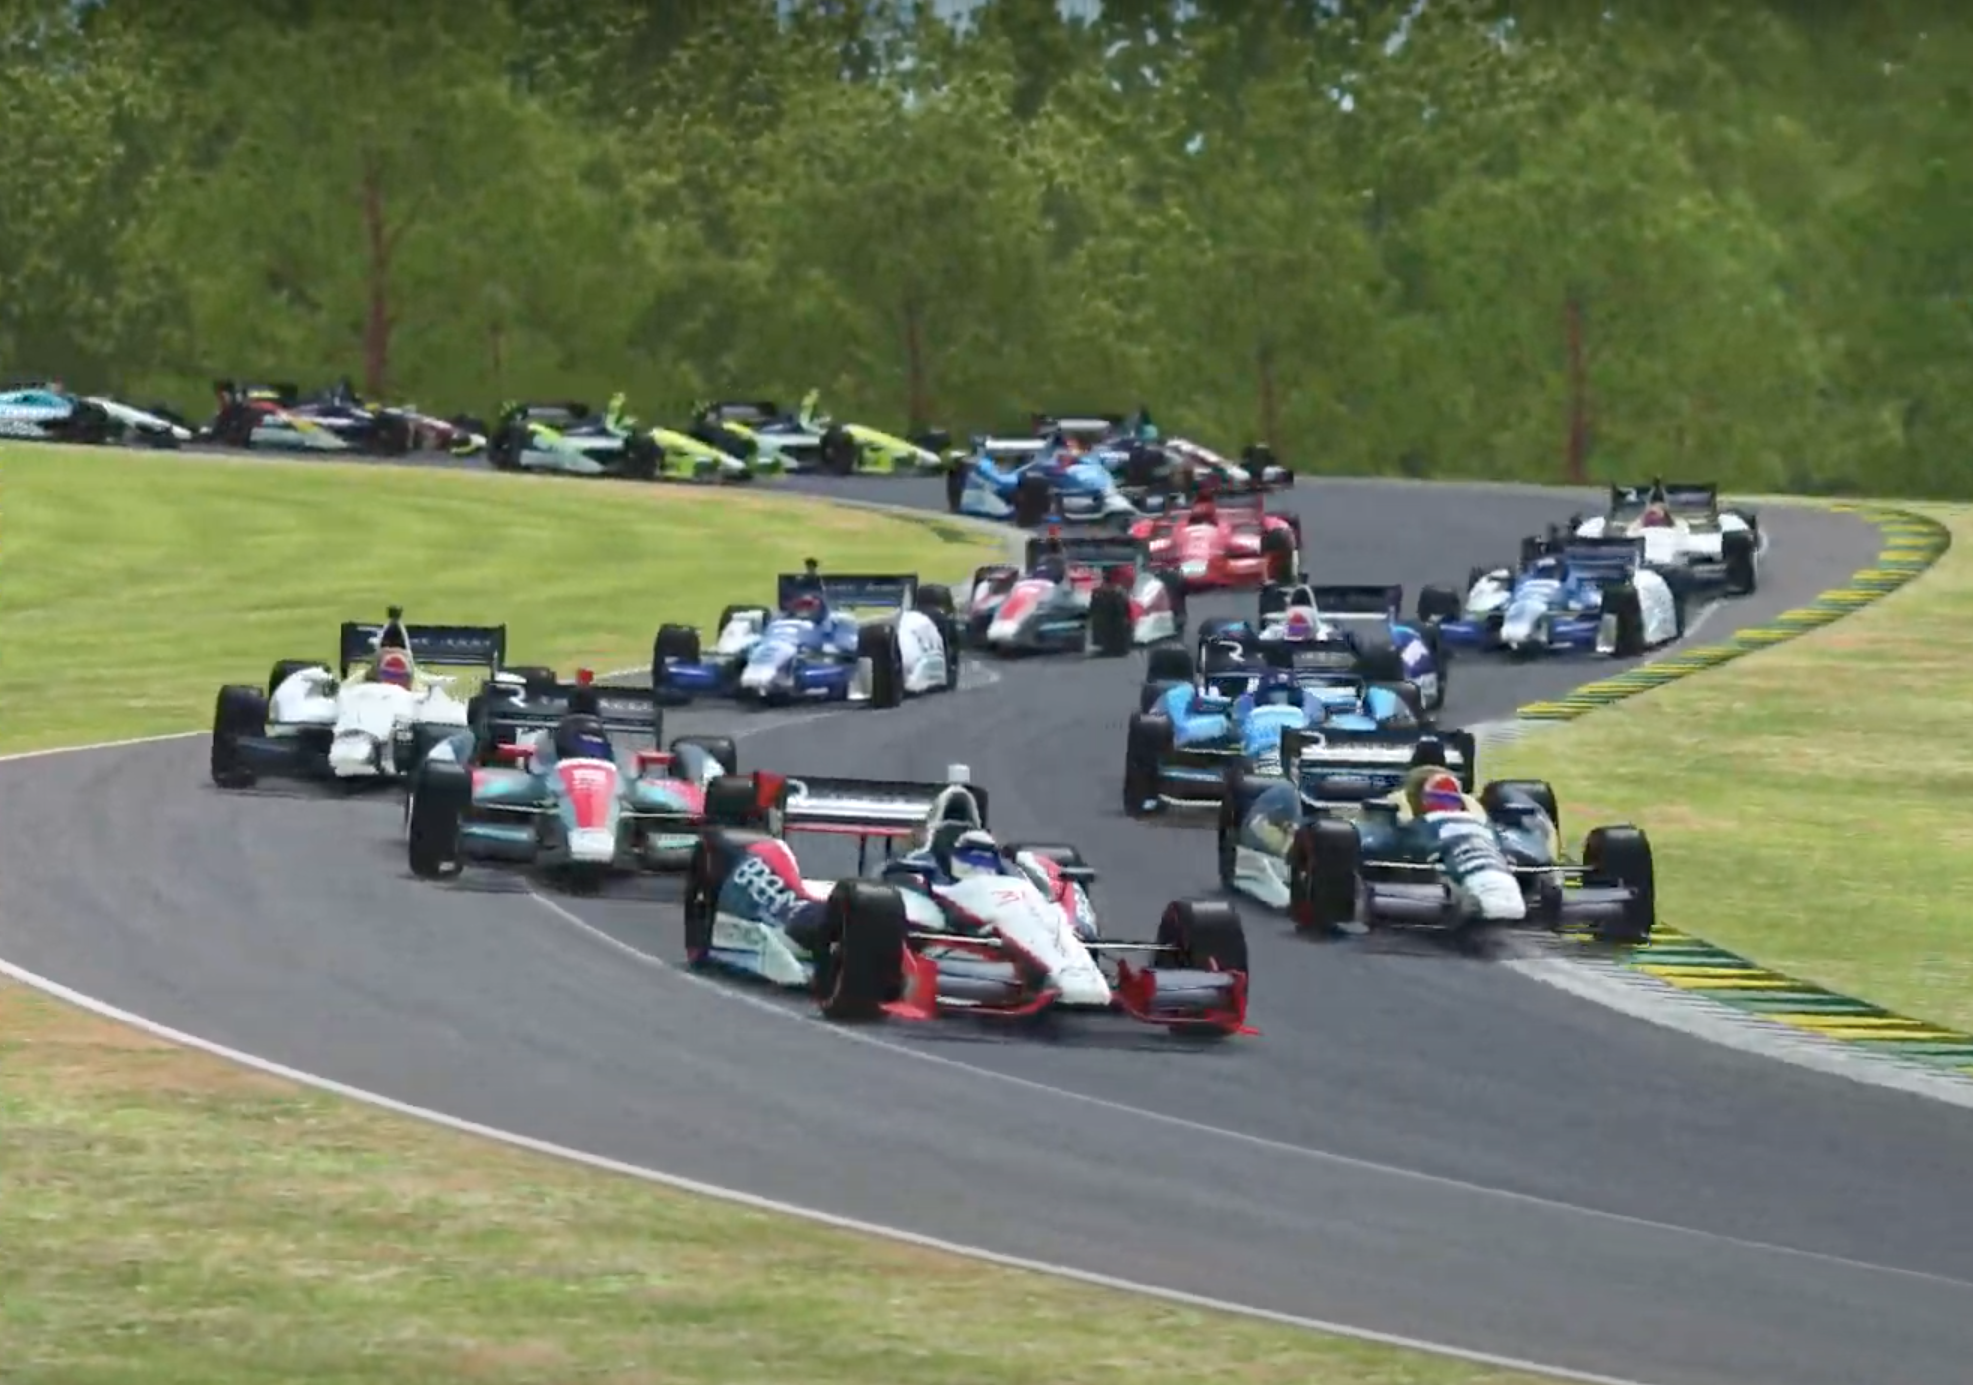 Indypro R4 Feature Race Start